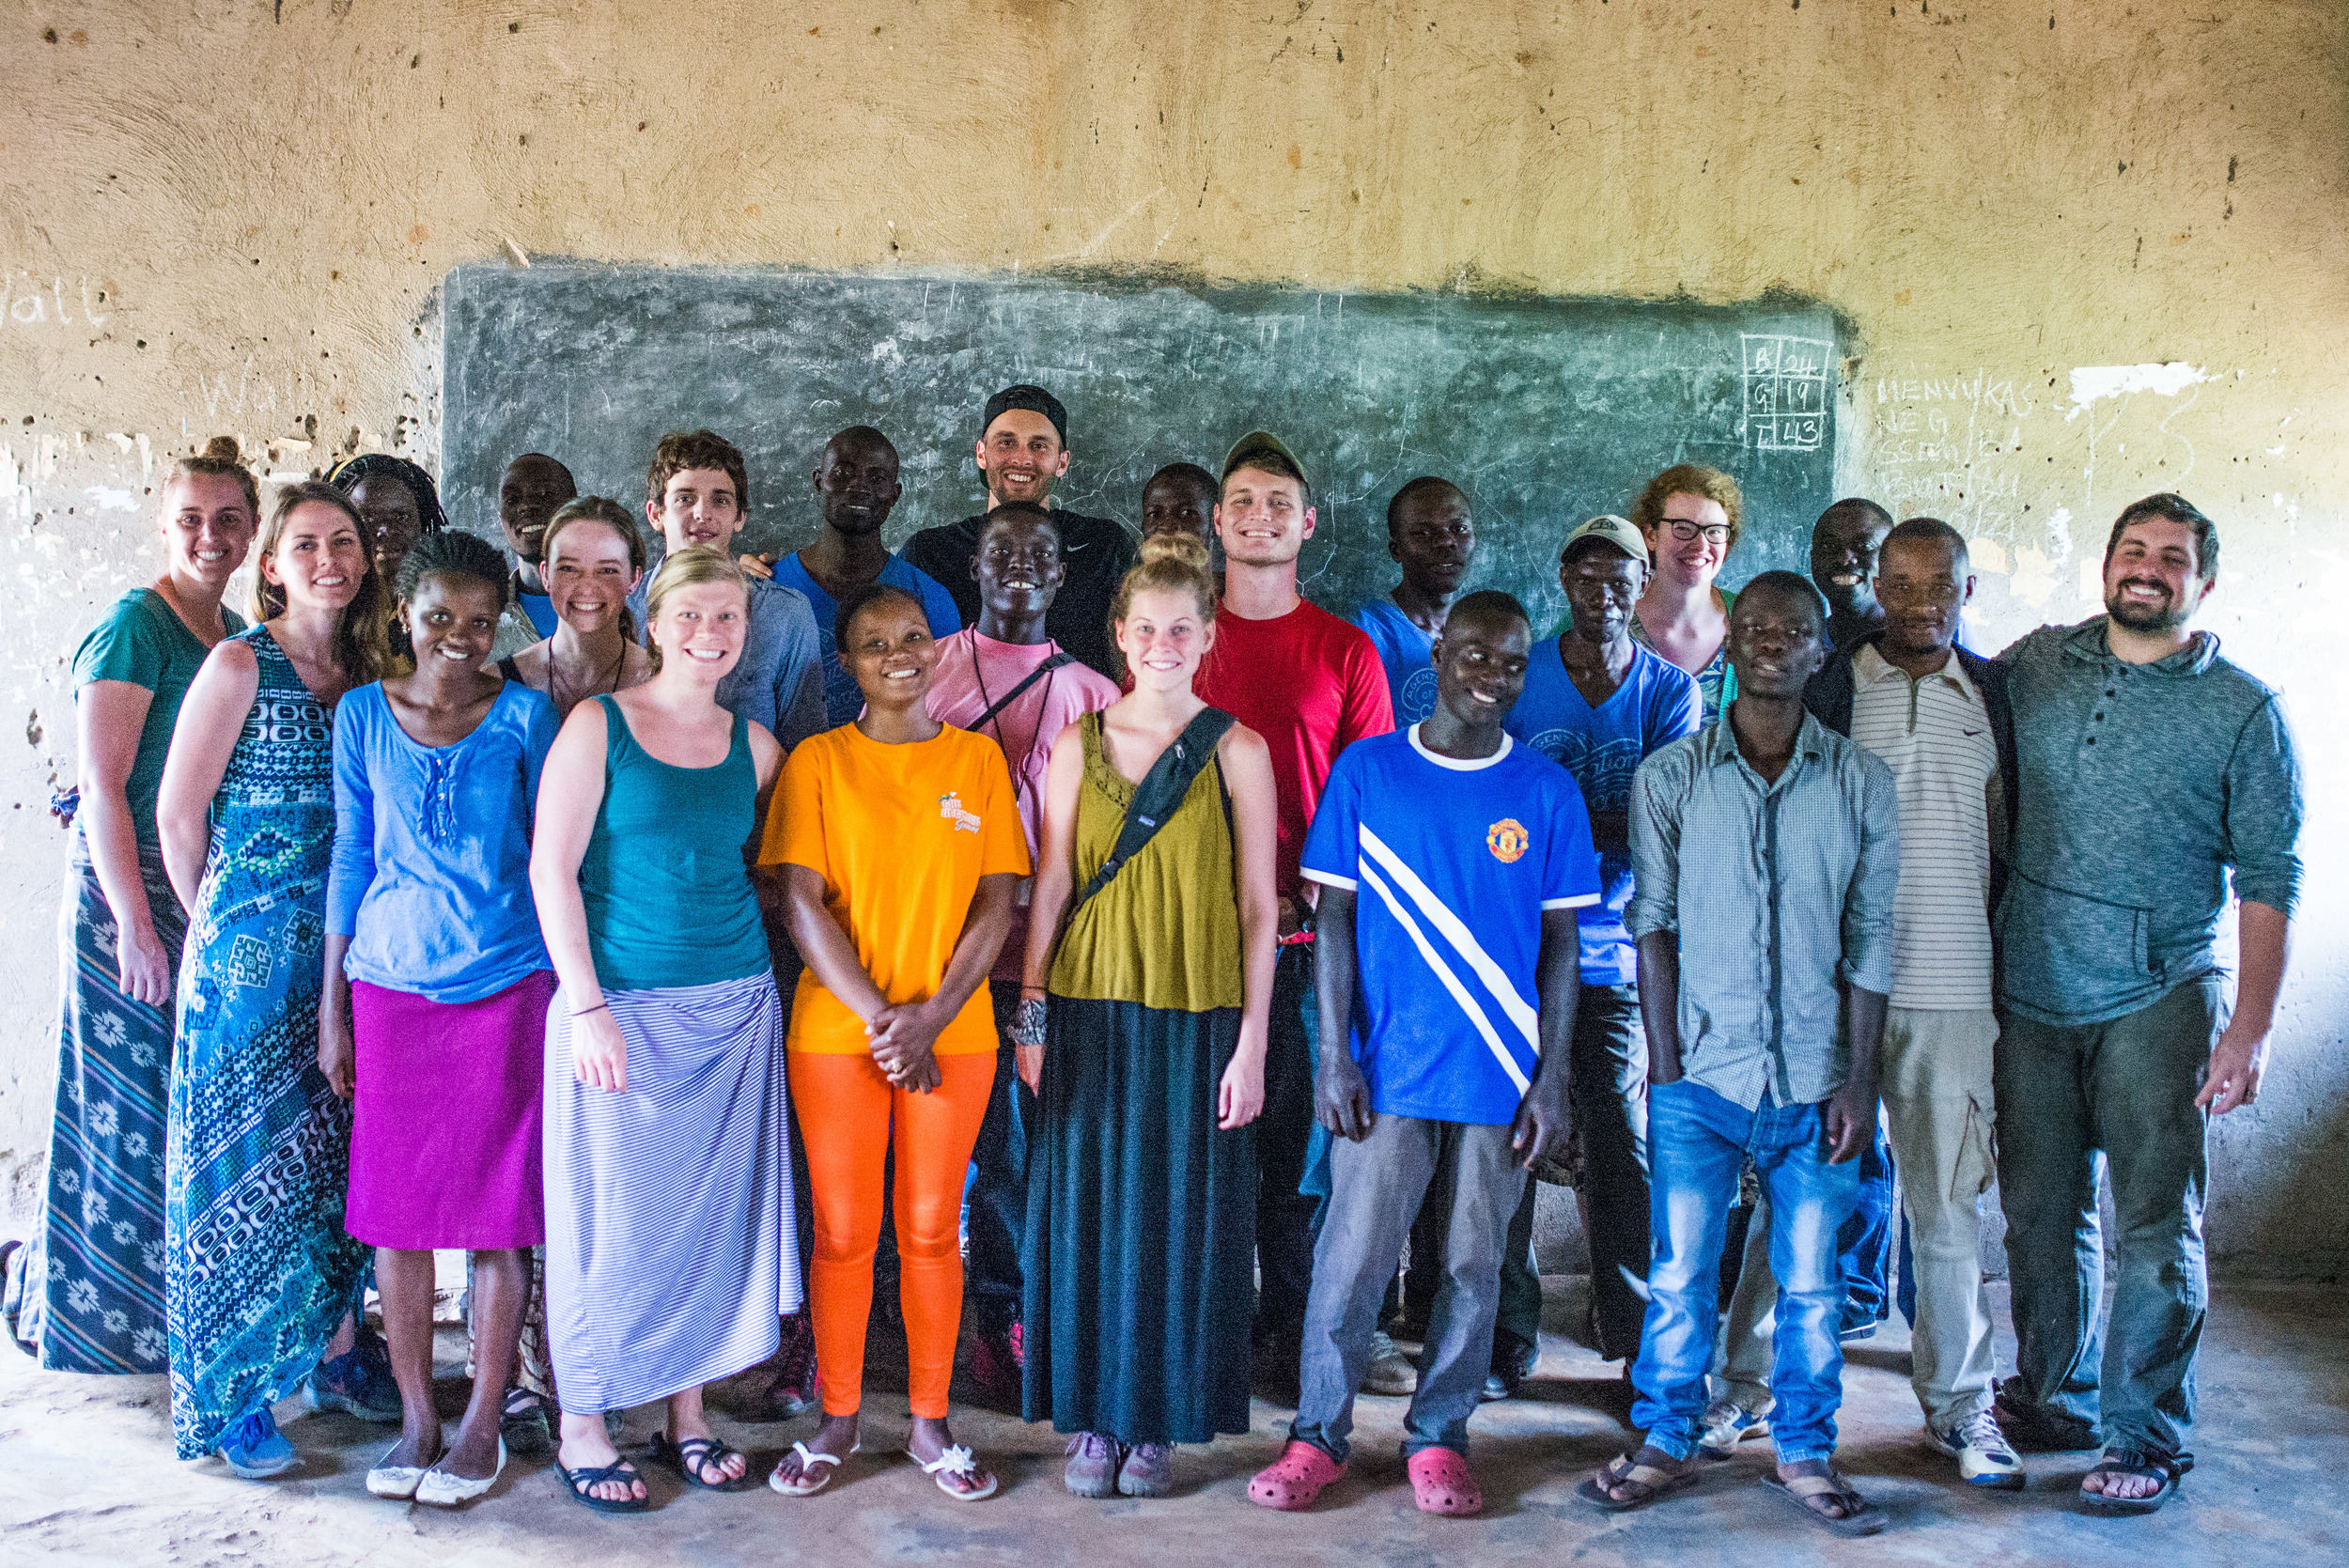 Our camp counselors: a combination of students from the Institute for G.O.D. in the US and East Africa, combined with G.O.D. facilitators and cooperatives. A wonderful crew!